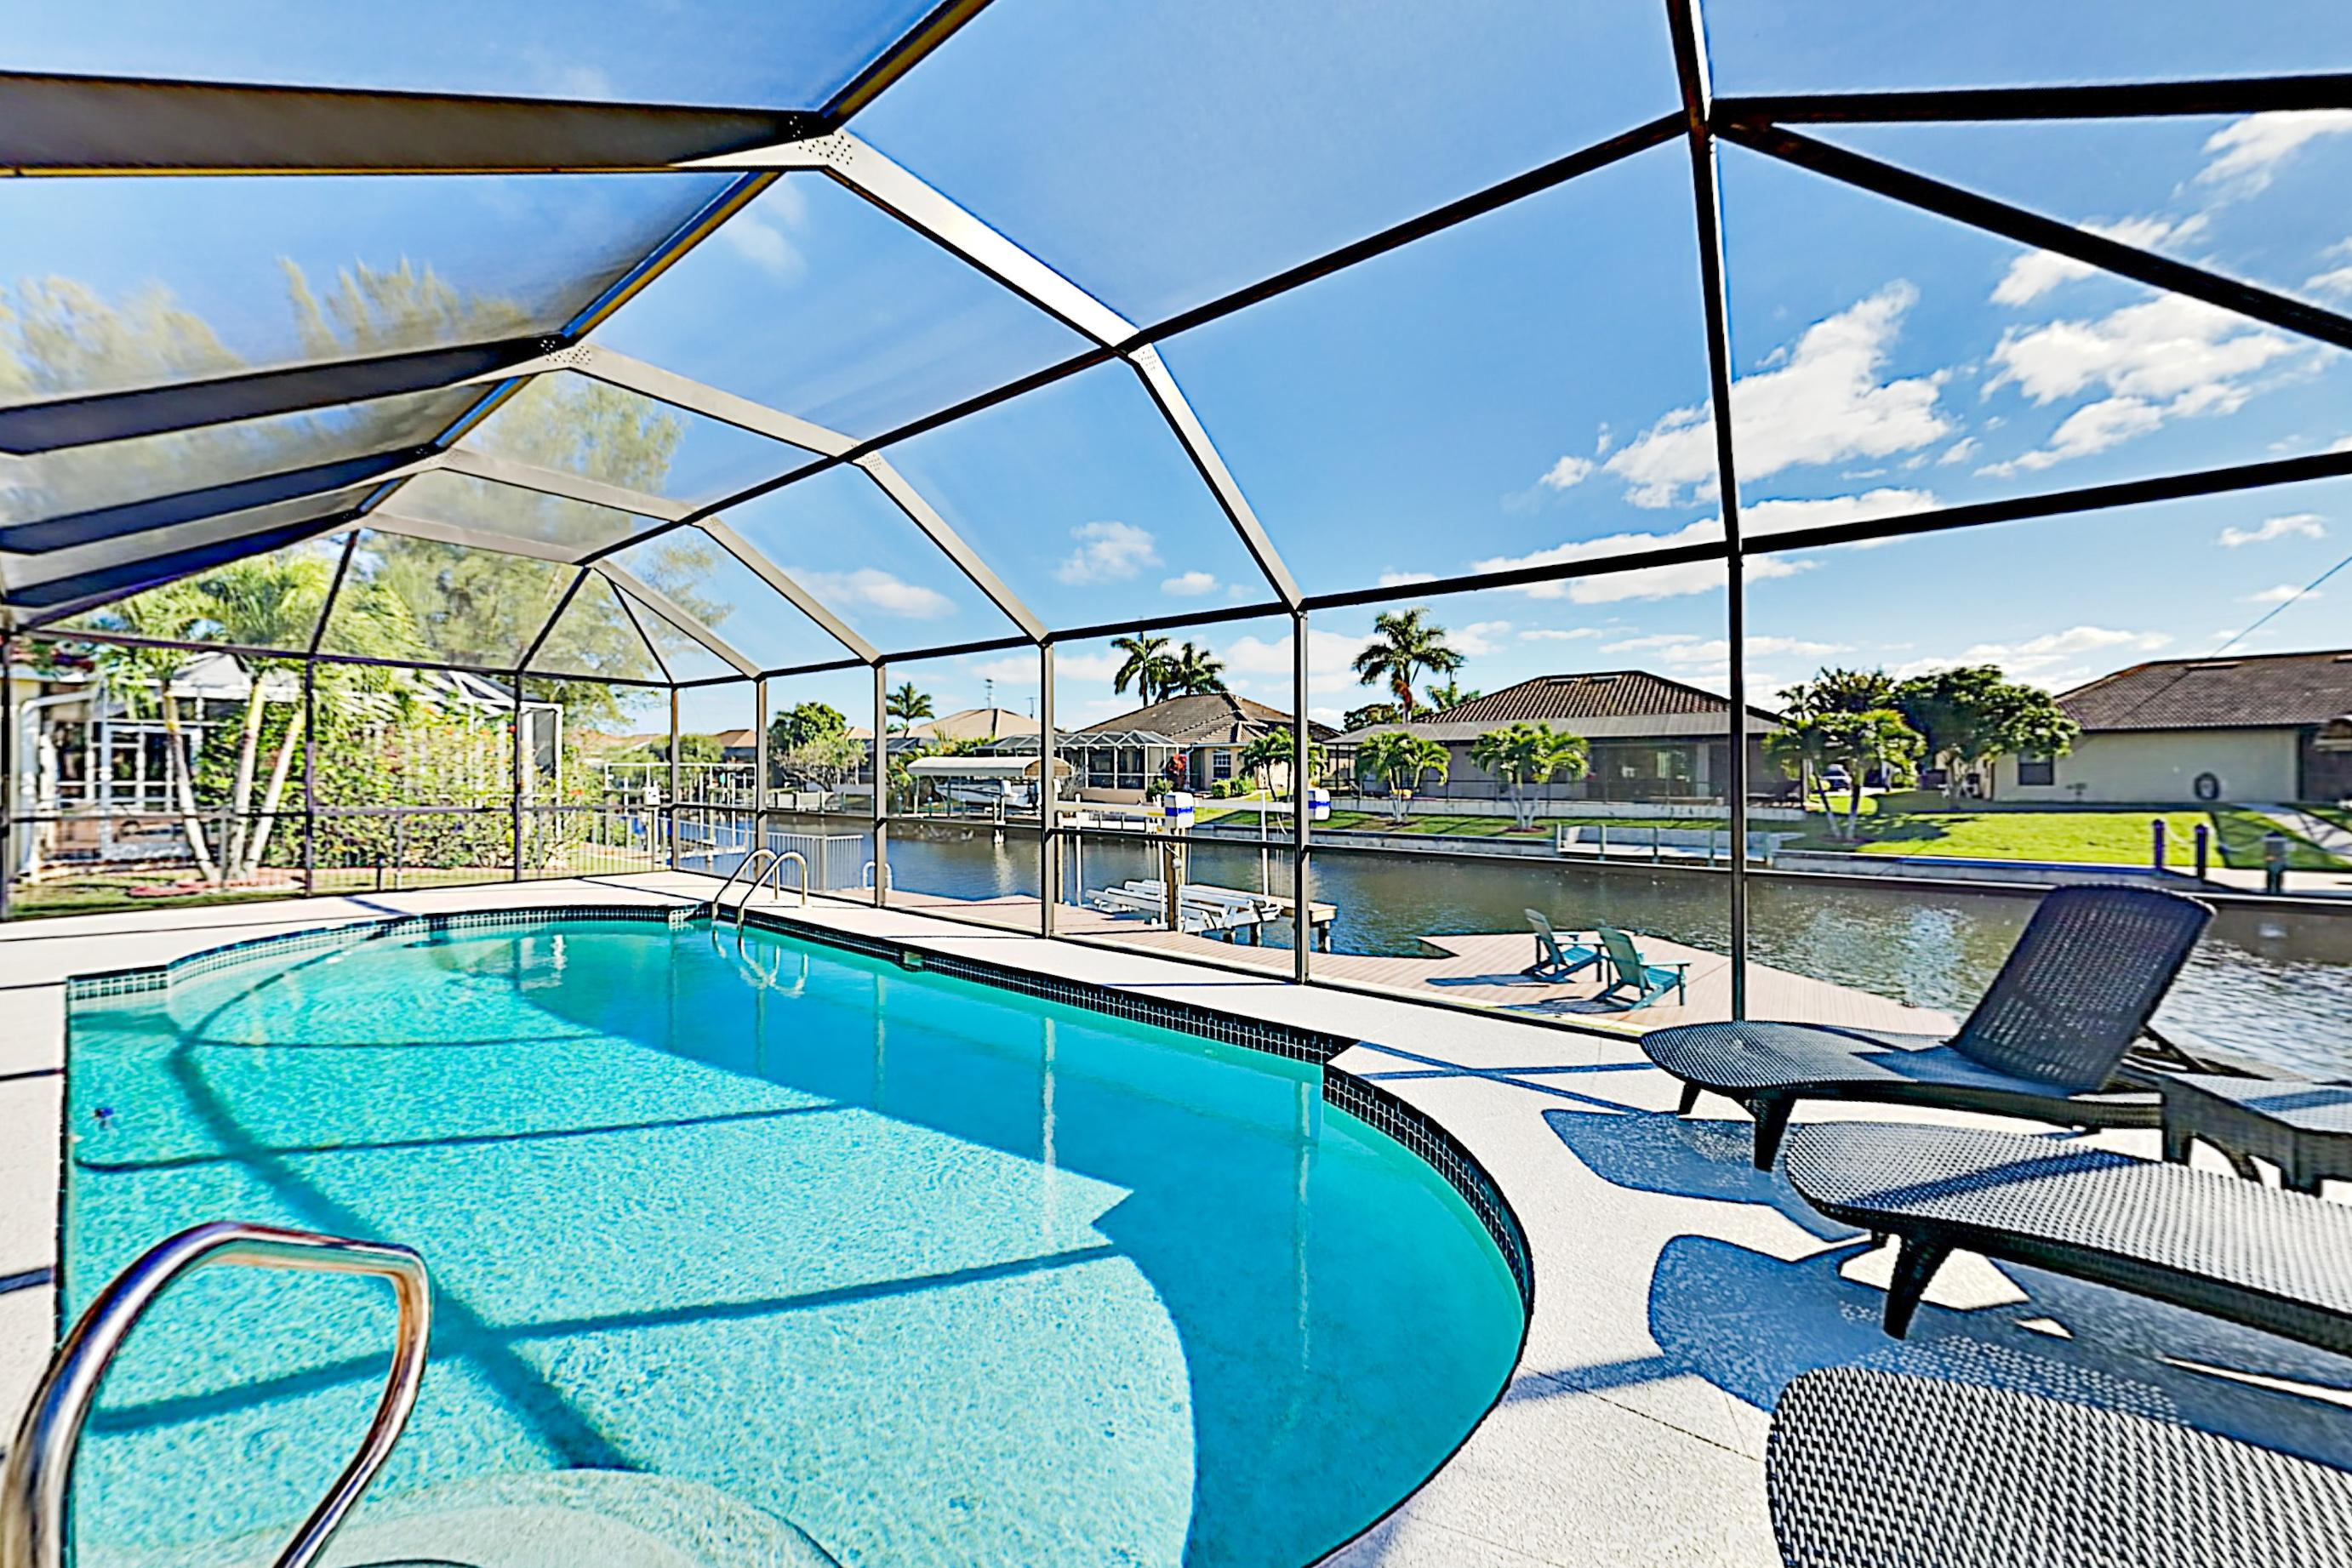 Property Image 1 - Peaceful Canal-Front Home with Screened Pool and Boat Dock